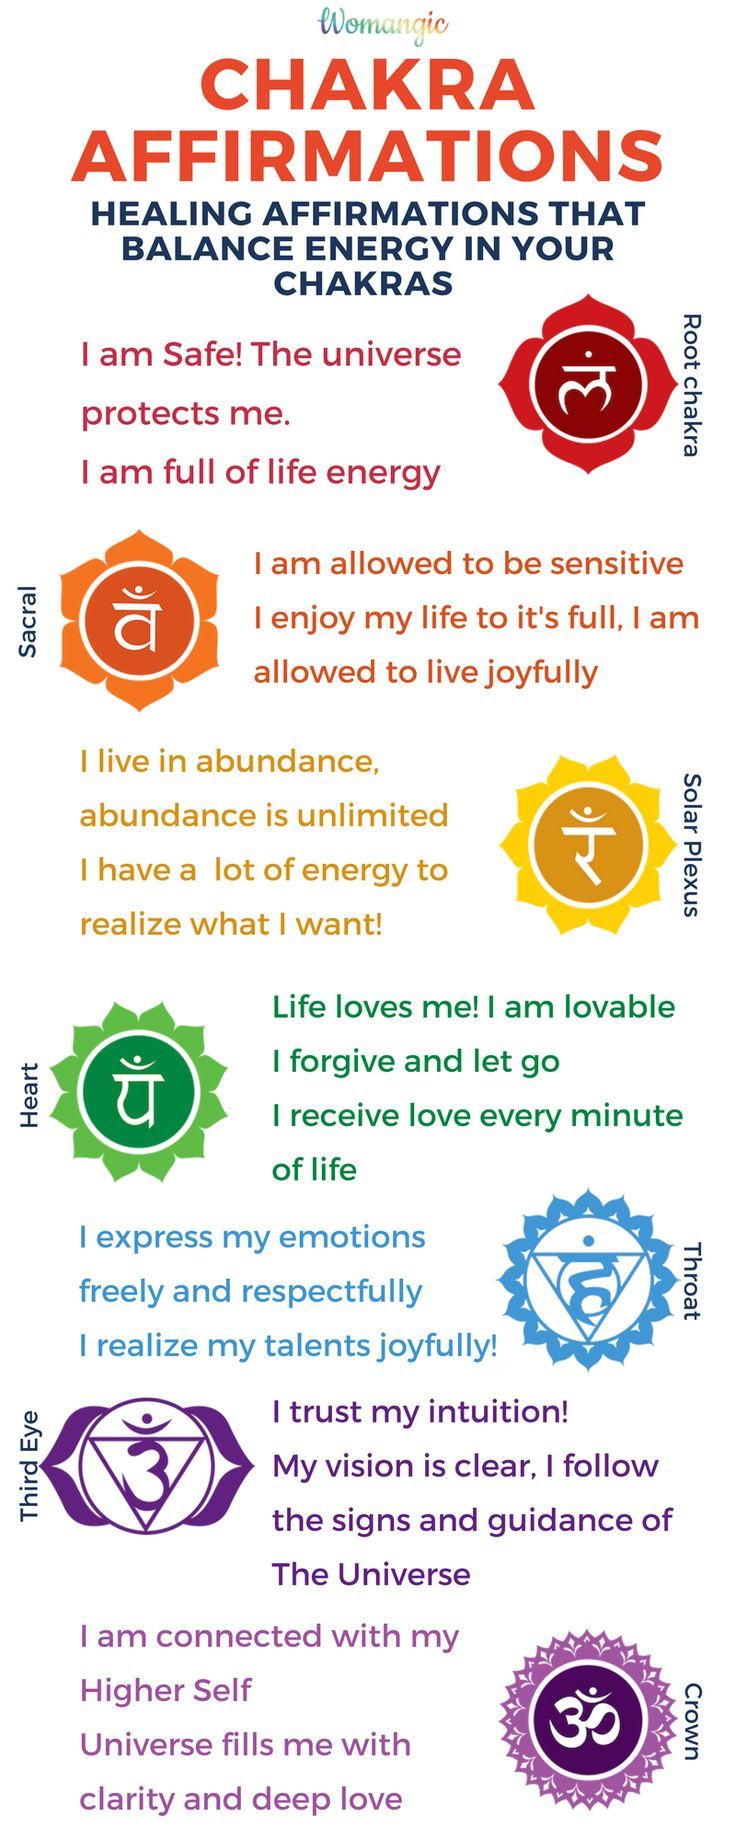 Breathe in, breathe out 3x… 10 sec relax, next chakra…visualize peace, stren… – action